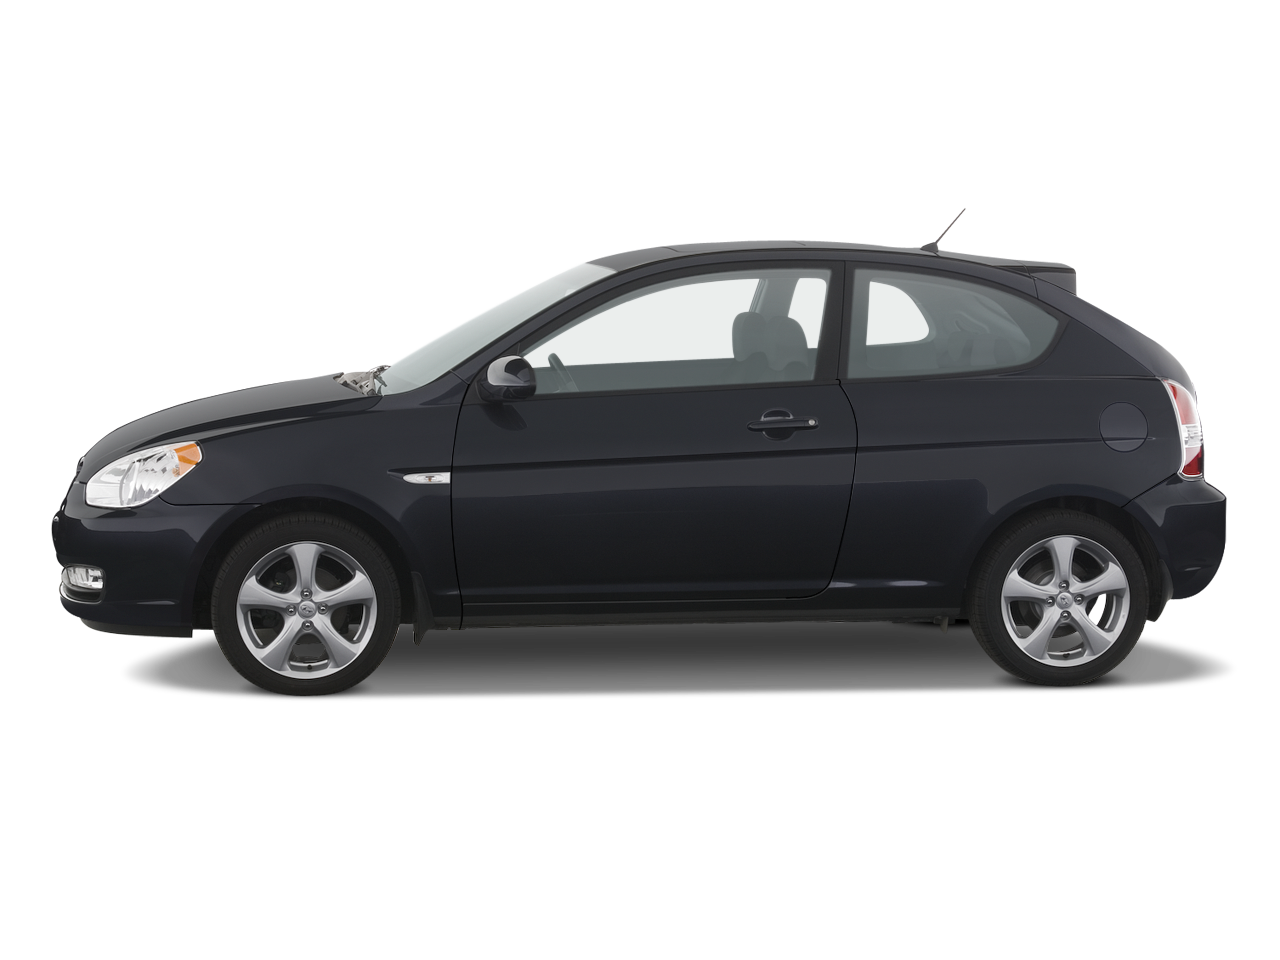 Hyundai Accent Mpg >> 2008 Hyundai Accent SE - Hyundai Subcompact Hatchback Review - Automobile Magazine